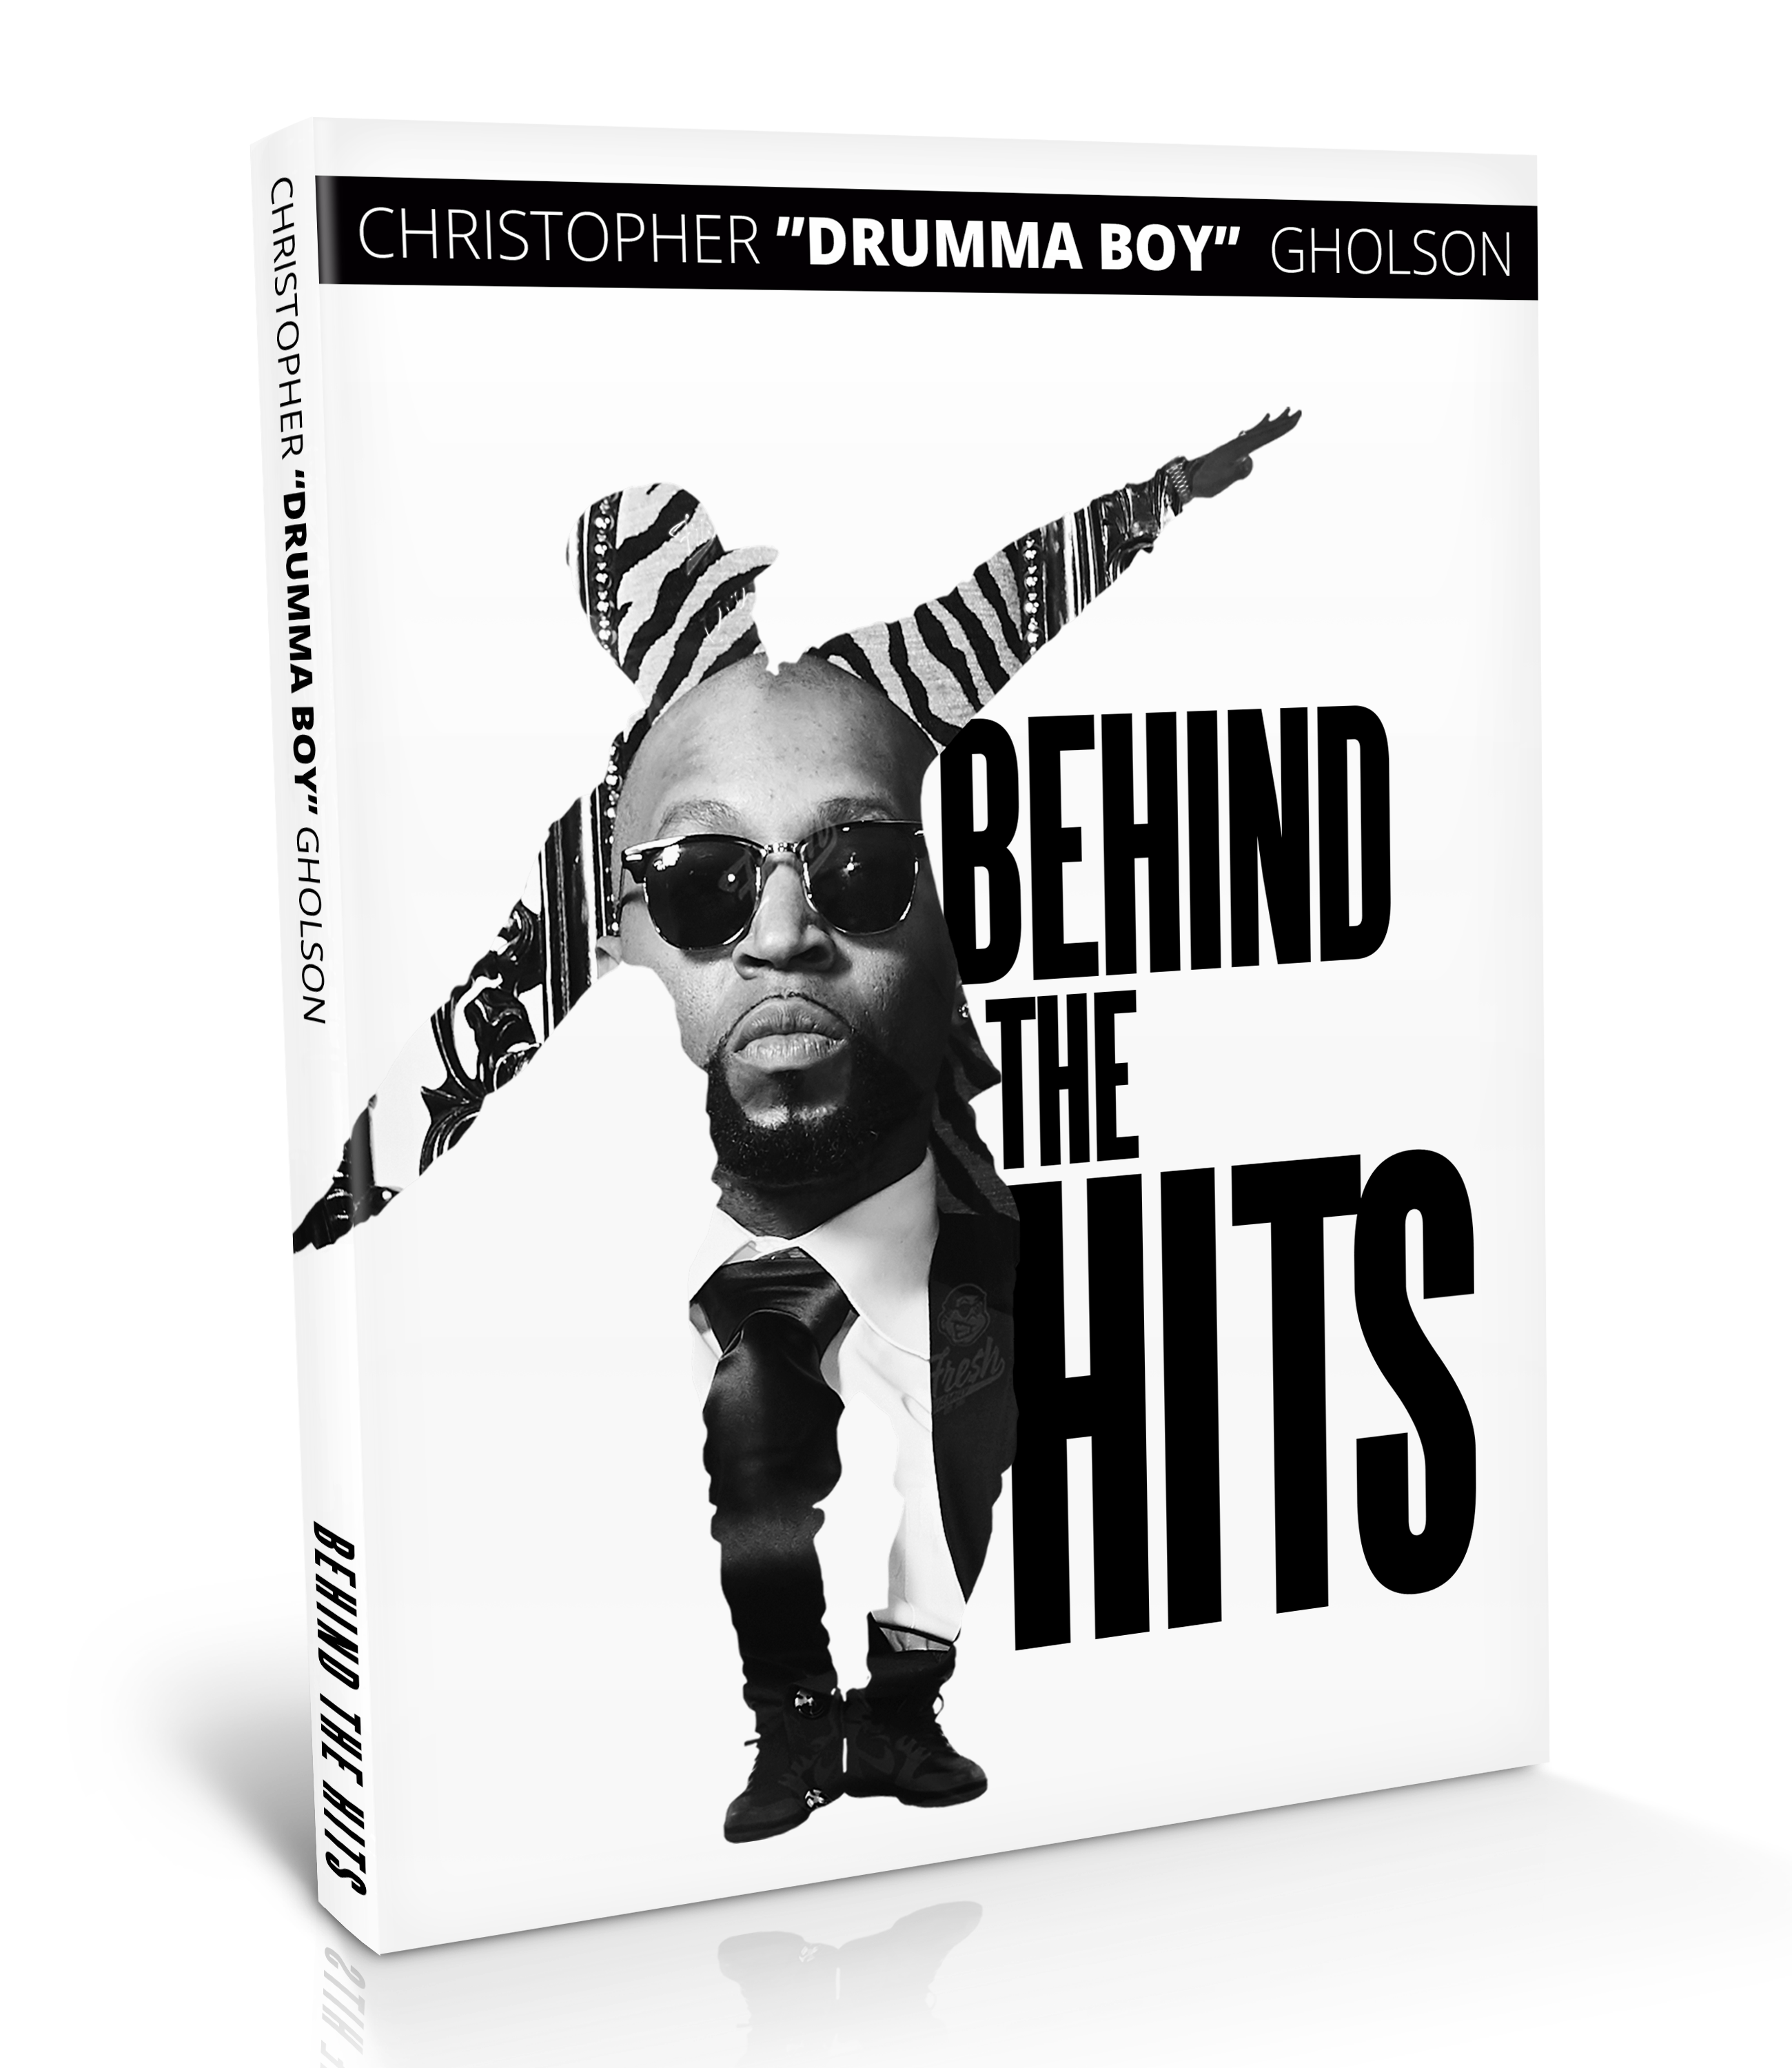 Behind_the_hits_4